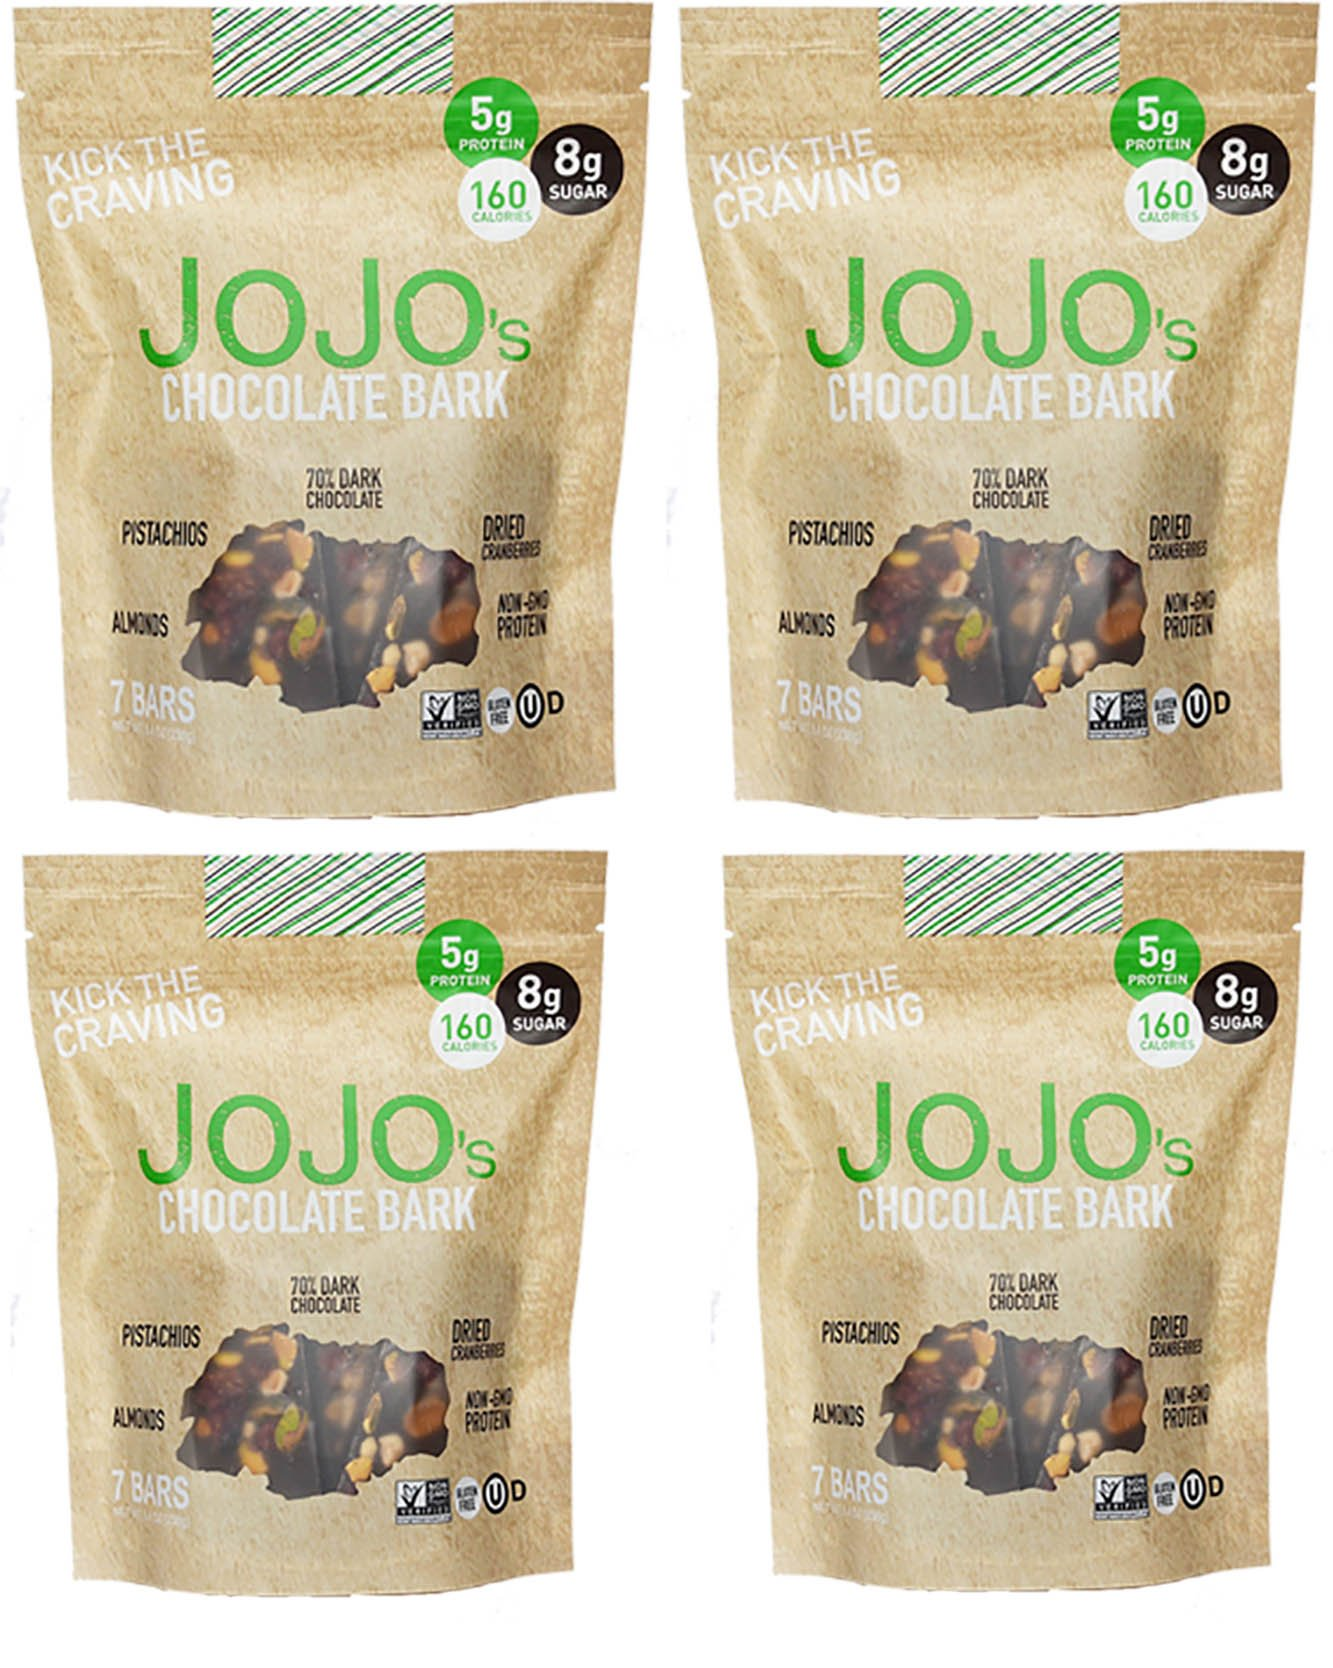 JOJO's Guilt Free Dark Chocolate Bark With All Natural Protein Raw Nuts and Cranberries, NON-GMO, Gluten Free, Paleo Friendly, 1.2 Ounce Bars, 28 Count(One Month Supply- 33 oz)